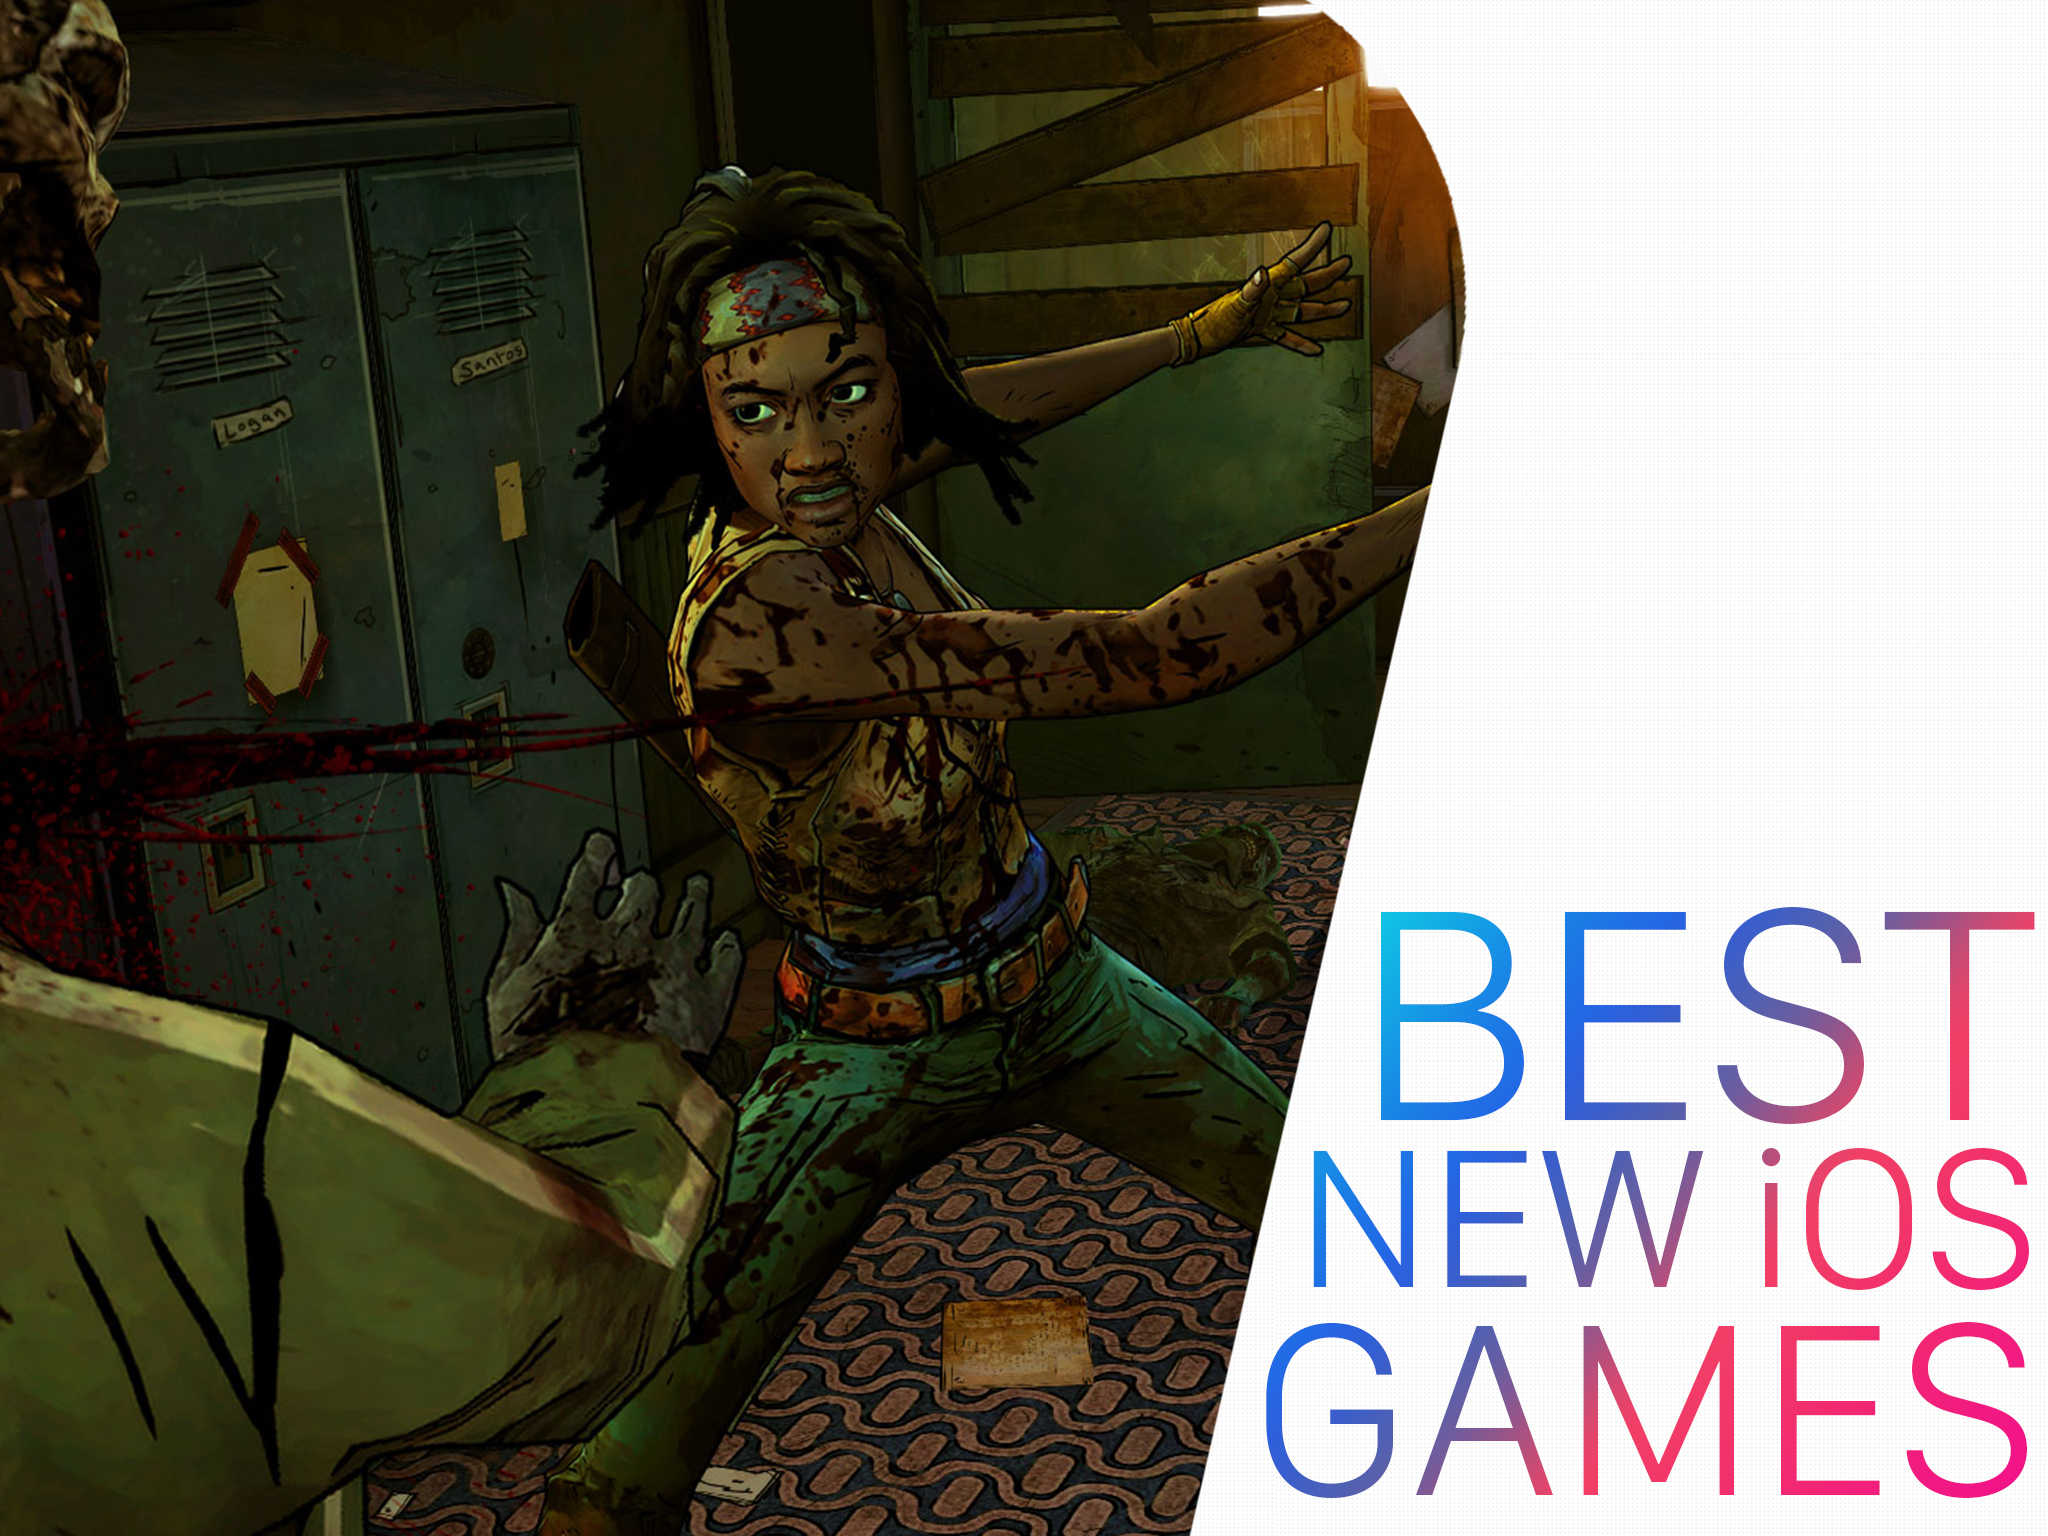 Best new iOS games February 2016